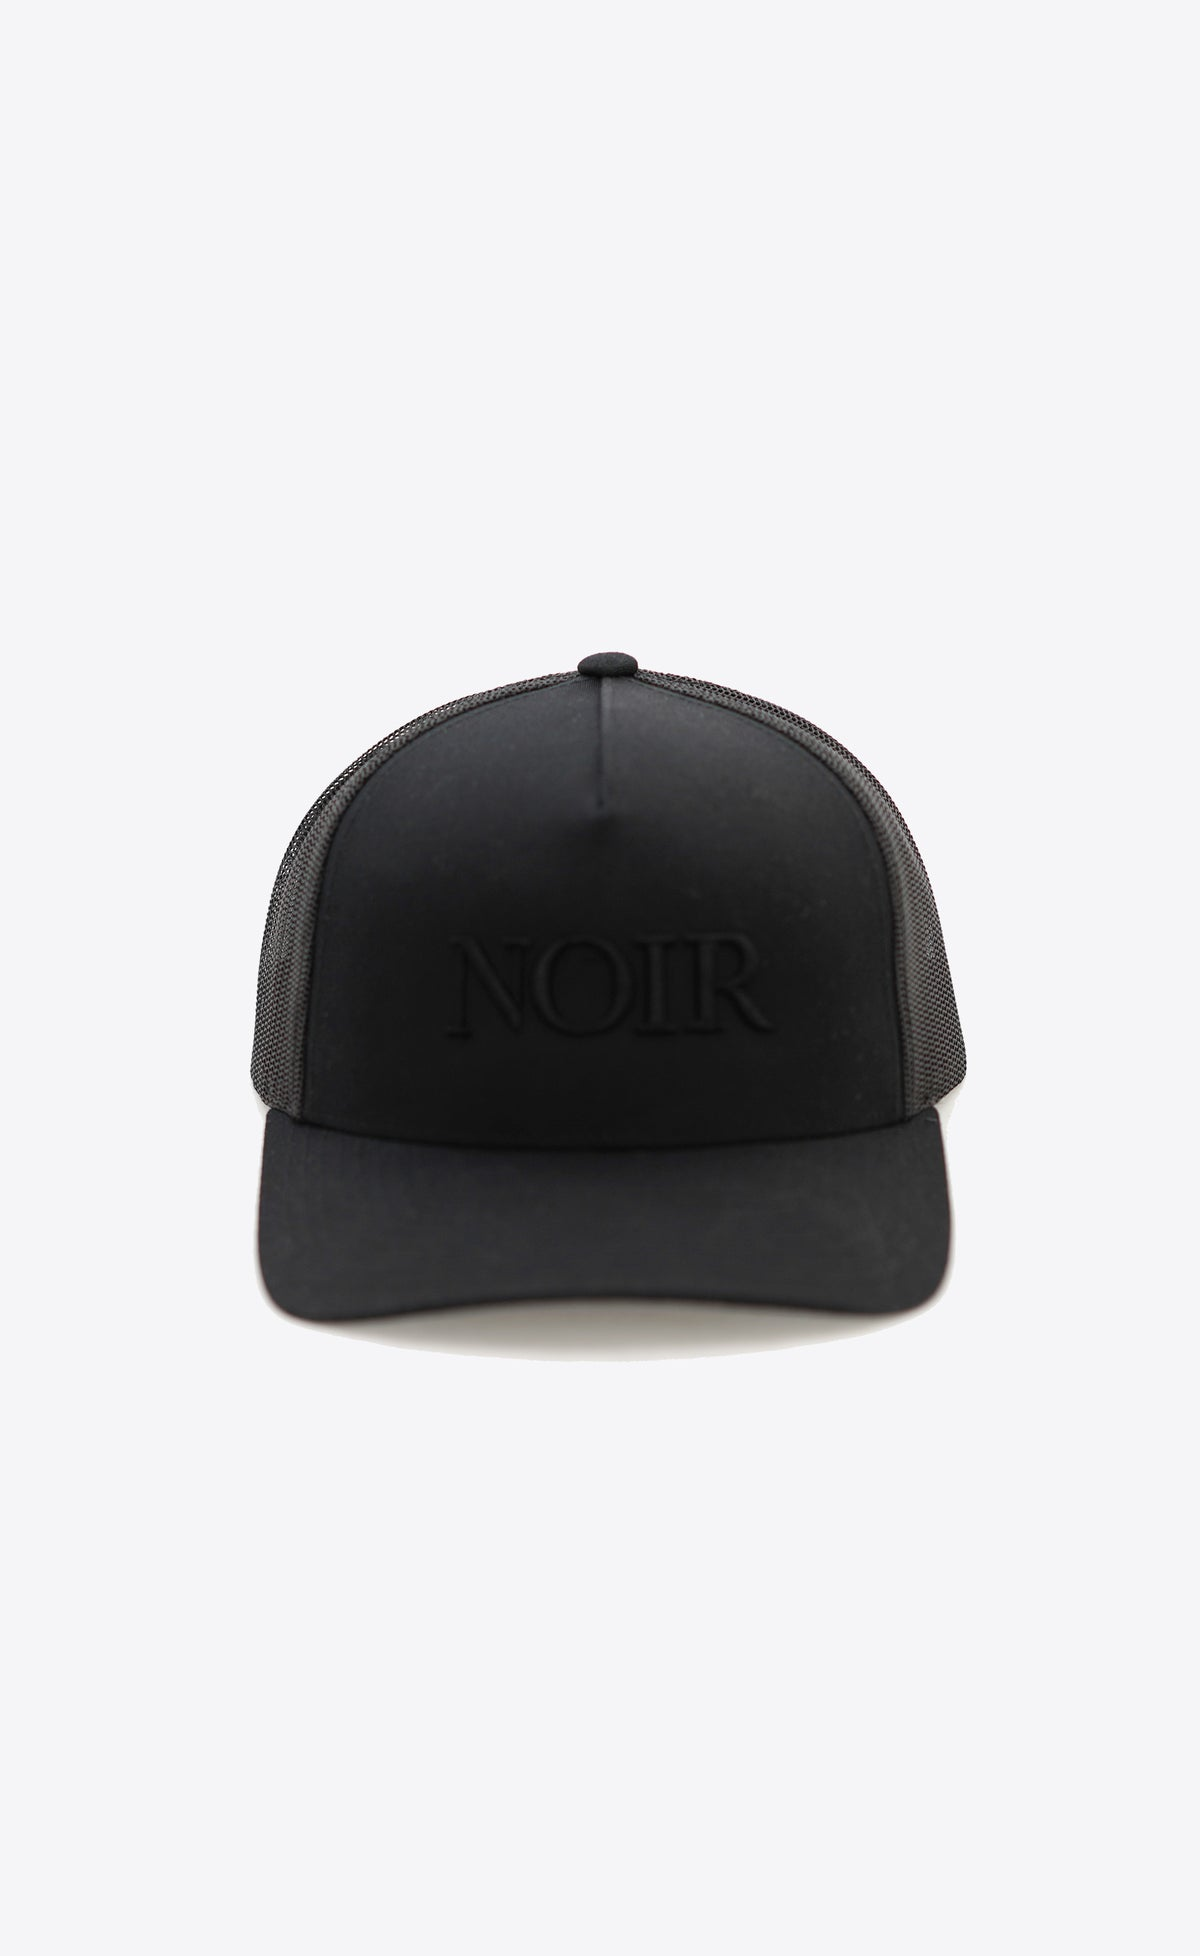 Noir Trucker Hat Black